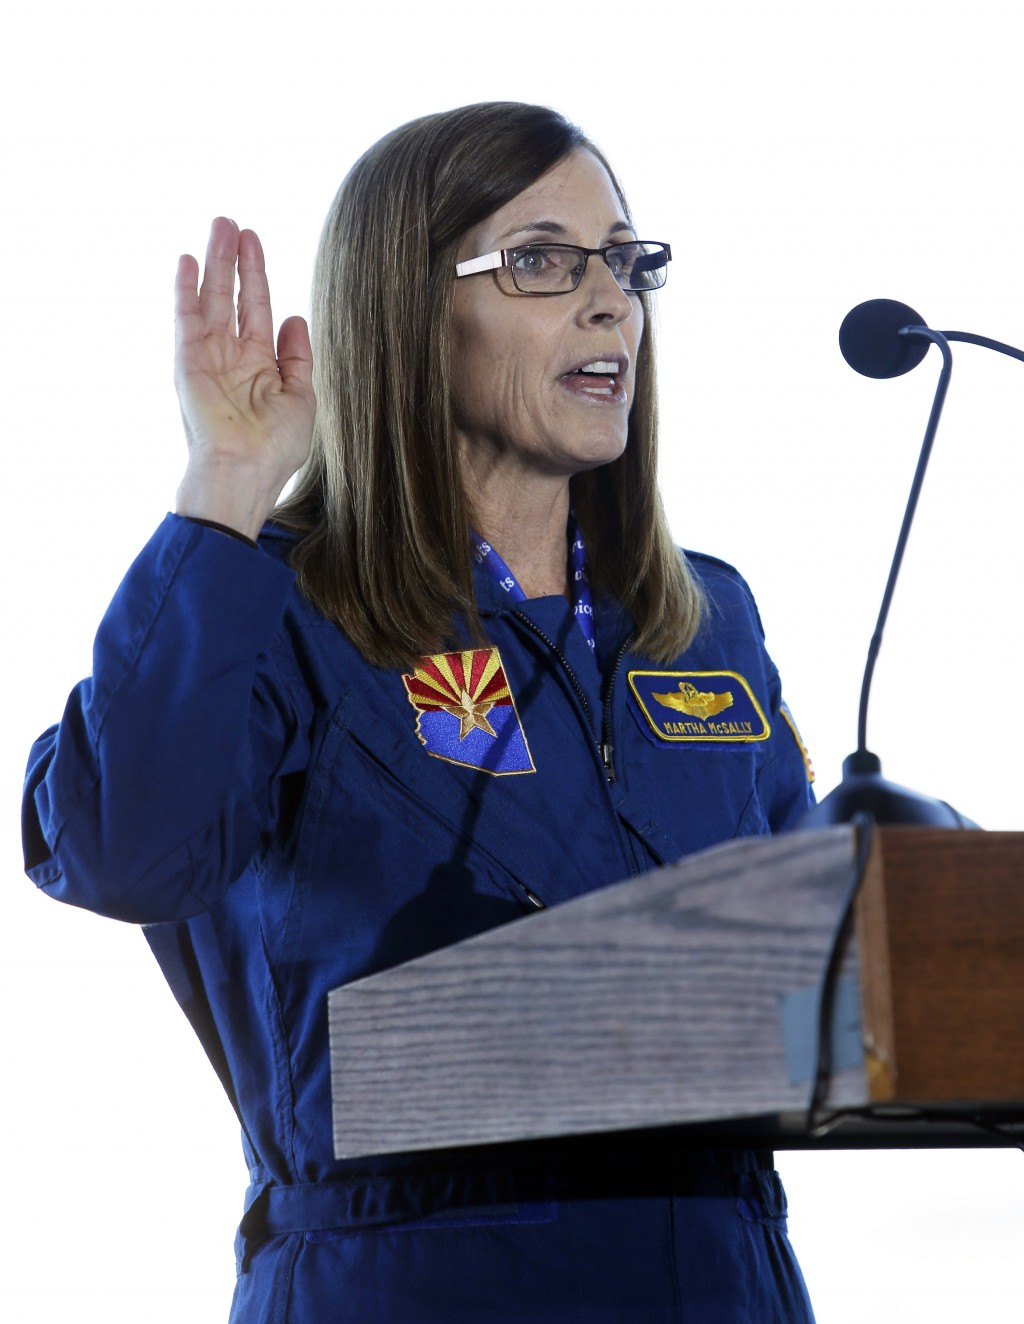 U.S. Rep. Martha McSally, R-Ariz., speaks at a rally, Friday, Jan. 12, 2018, in Tucson, Ariz. McSally announced Friday that she is running for the U.S